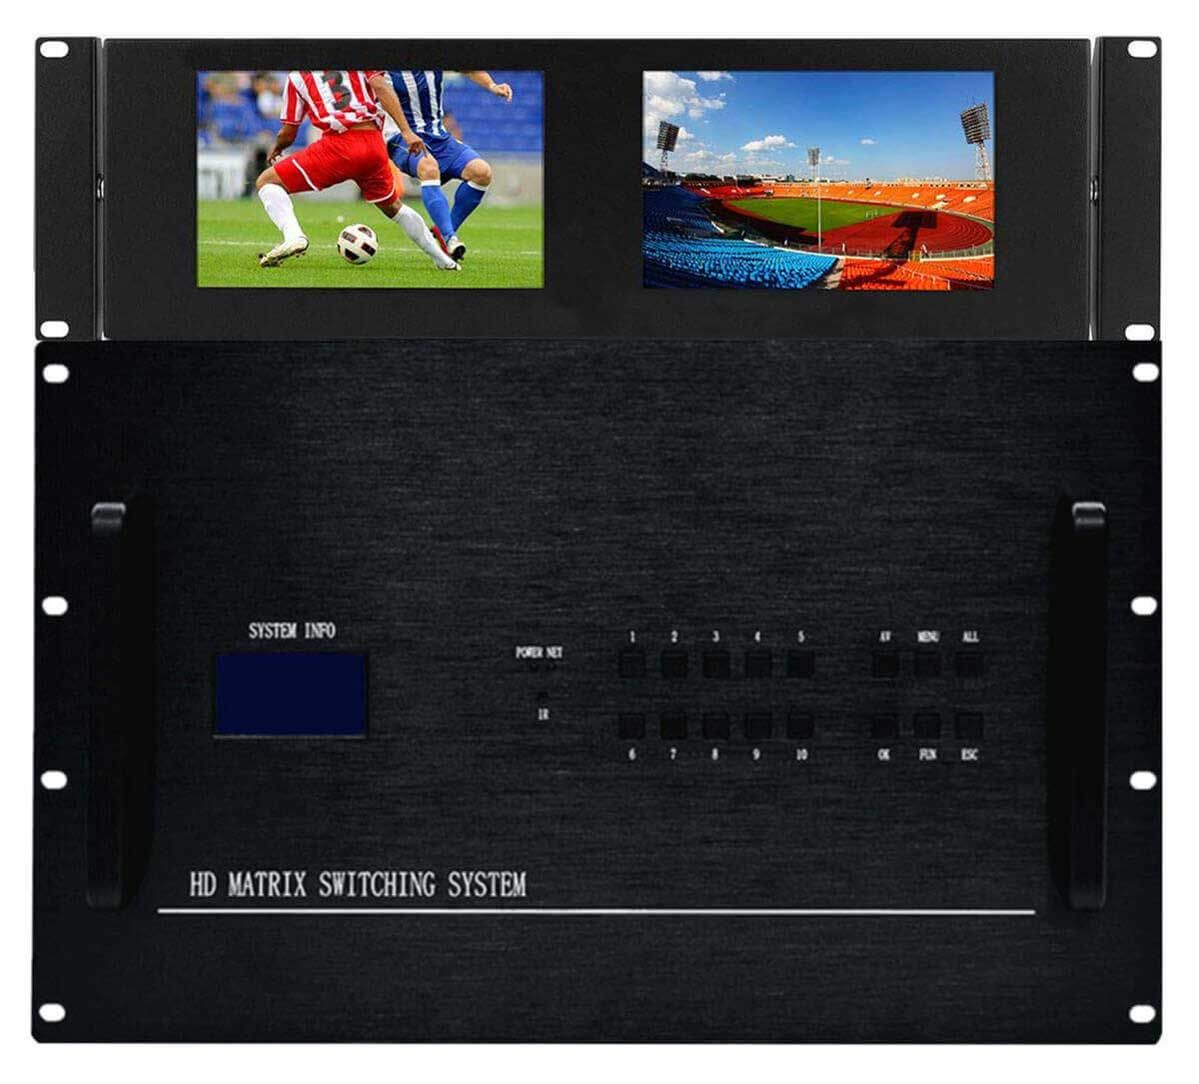 4K 8x16 HDMI Matrix HDBaseT Switch with 16-CAT5 Extenders